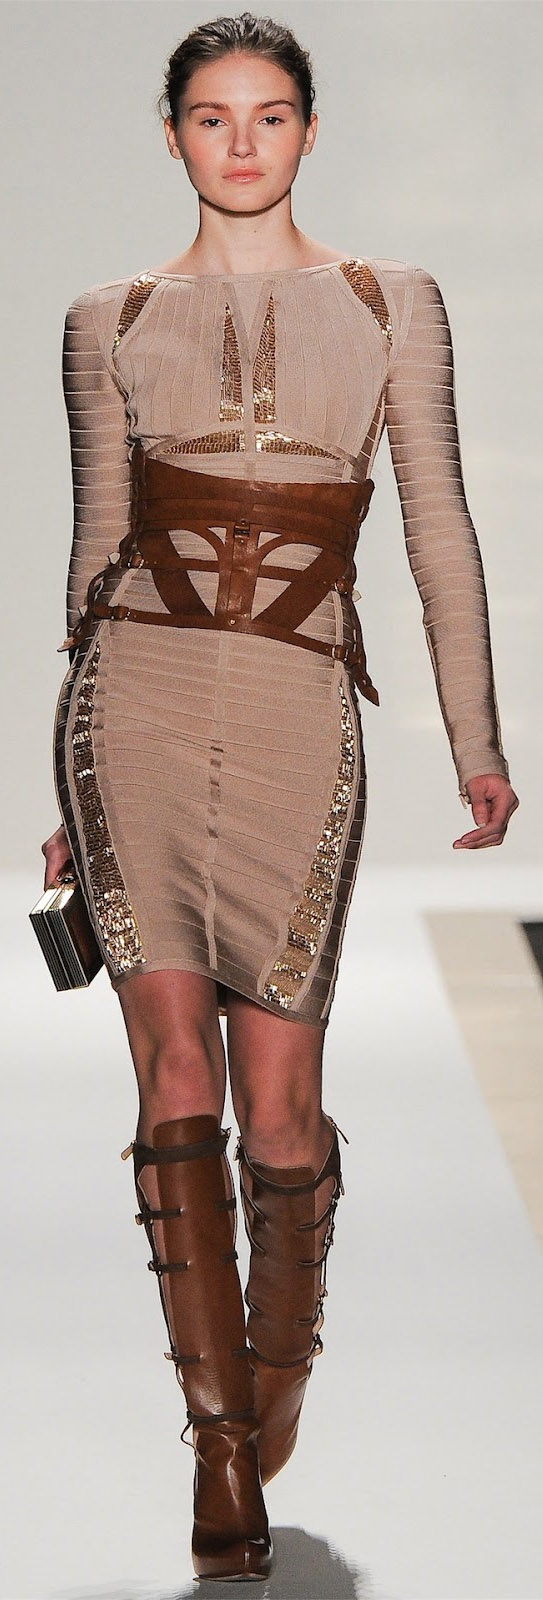 Herve Leger by Max Azria *from Vogue Italia* | bestaybeautiful